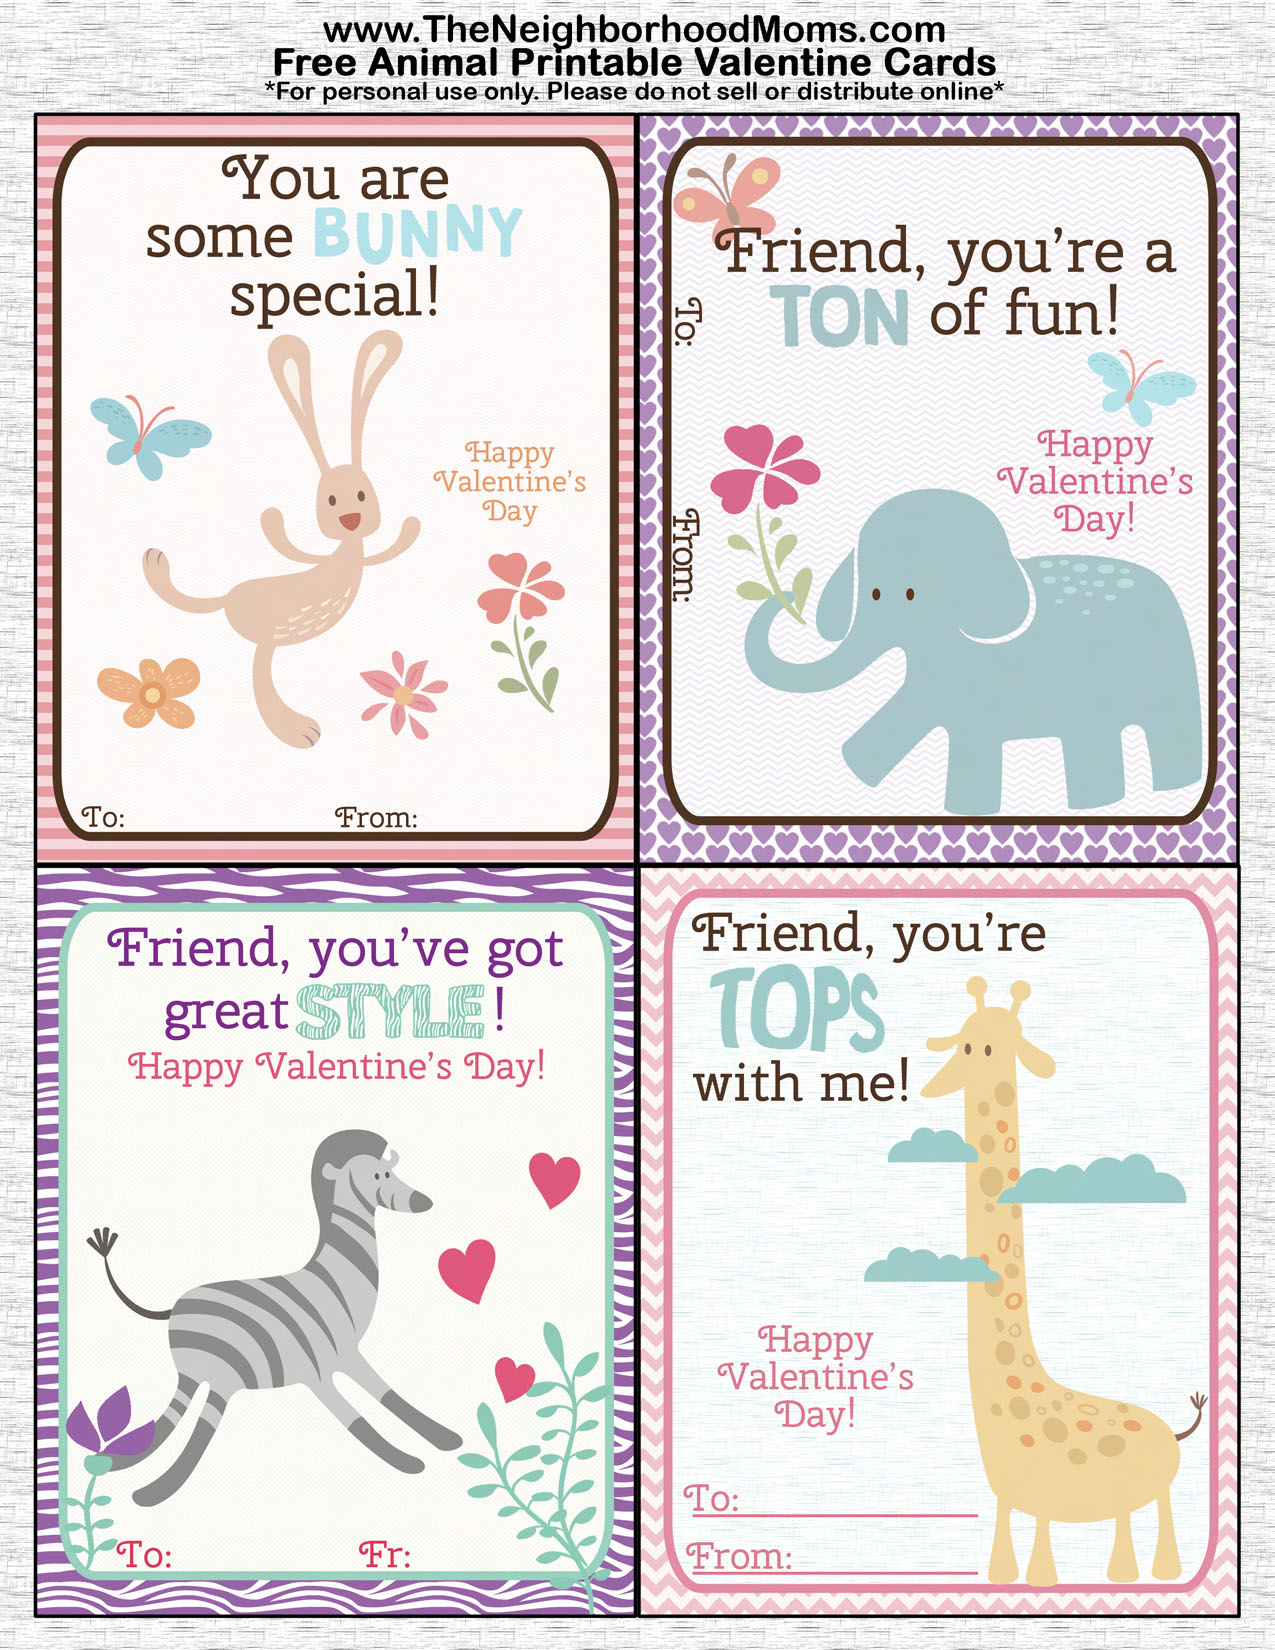 Printable Valentines Cards The Neighborhood Moms – Online Printable Valentine Cards